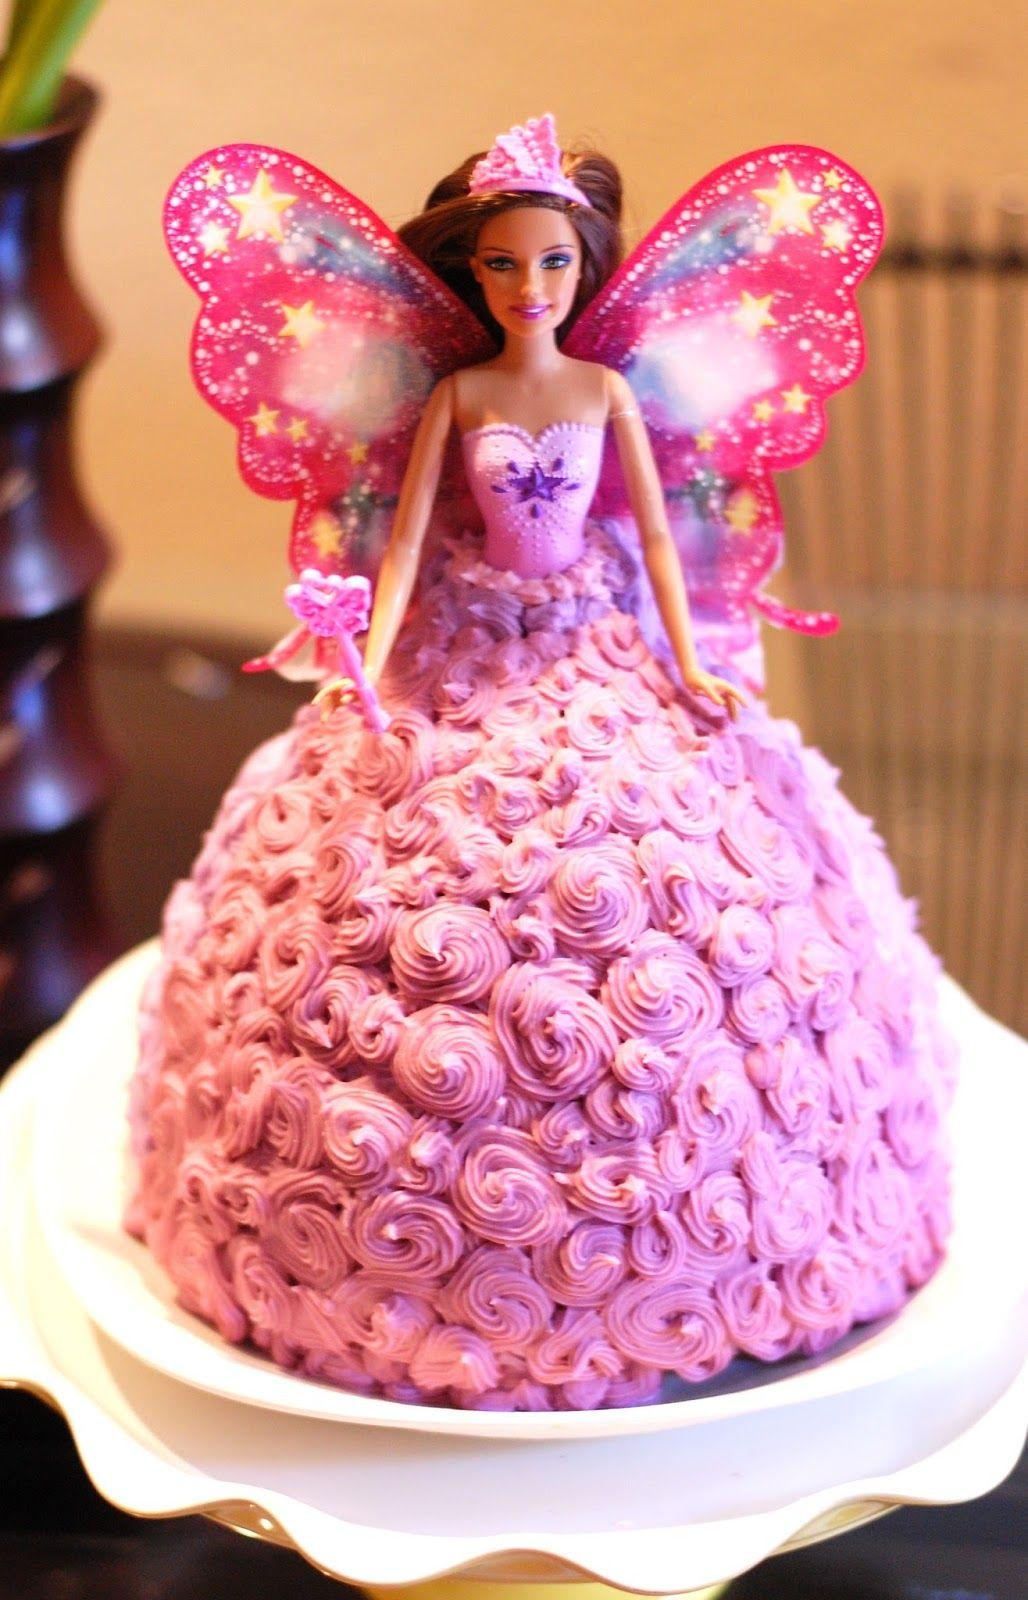 Michelle Party Of 5 How To Diy Barbie Cake Under 30 Barbie